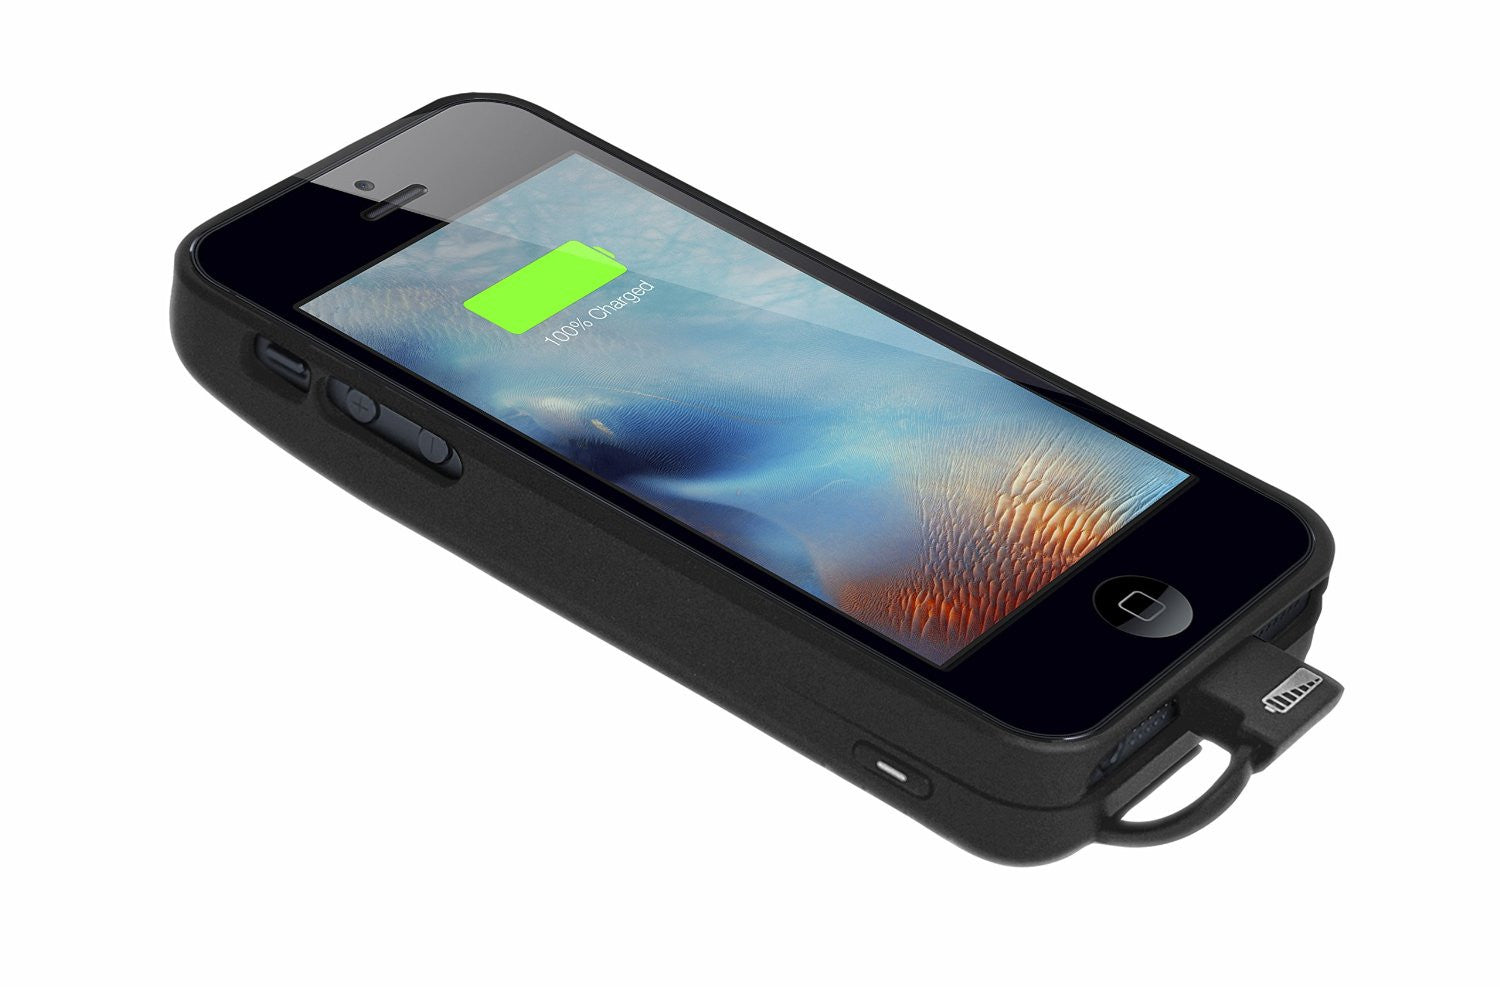 new product b38cd 0d6b8 [Apple MFi Certified] Skiva PowerFlow 2000mAh iPhone SE / 5s Portable  Charger External Rechargeable Protective Juice Power Bank Pack Cover (AP104)